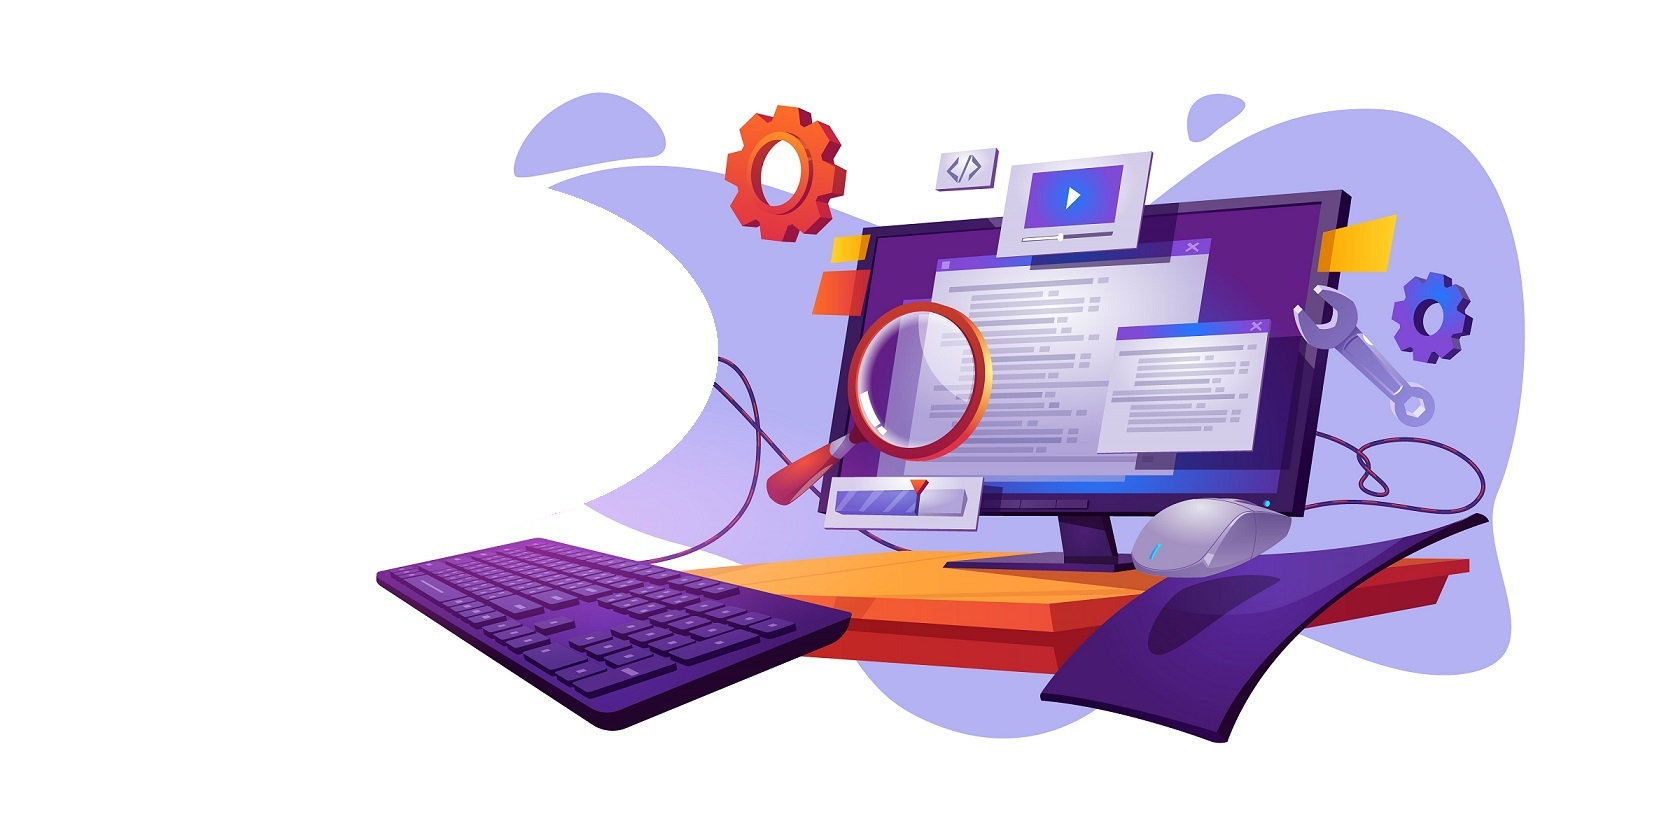 Website Designs, Web Apps, Mobile Apps and IT Support